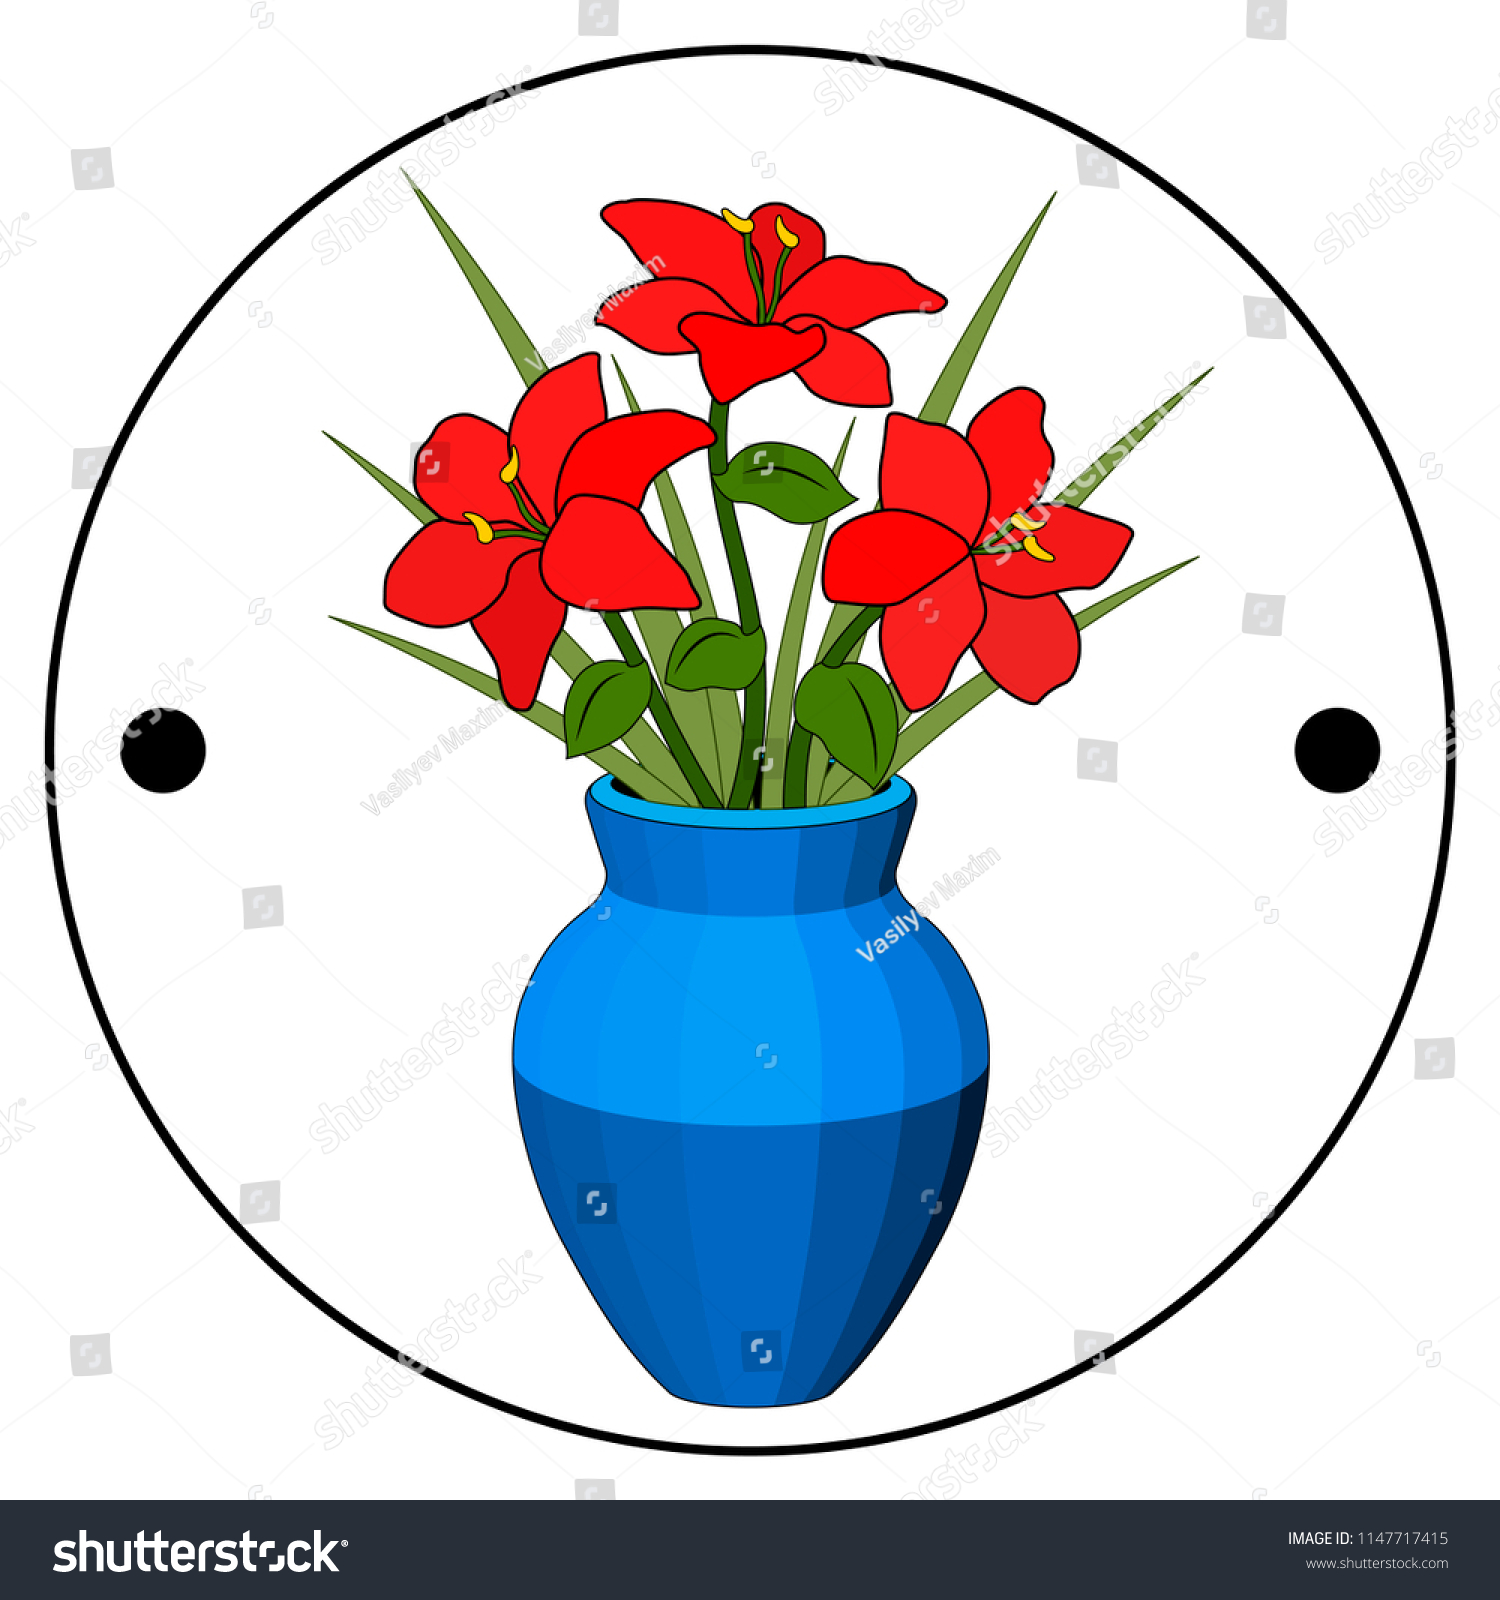 Thaumatrope old animated optical toy 19th stock vector royalty free thaumatrope old animated optical toy of the 19th century taumatrop bouquet in vase izmirmasajfo